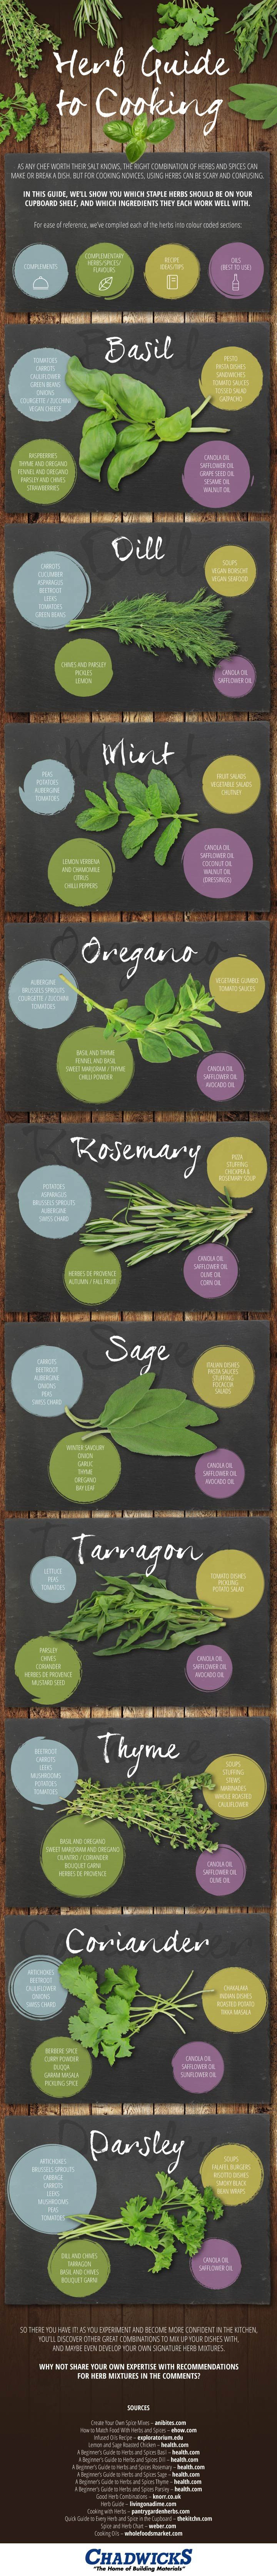 [Infographic] A Guide to Plant-Powered Cooking with Herbs - 10 staple herbs that everyone should have in their kitchen {The Food Revolution Network/John and Ocean Robbins} http://www.worldofatravelholic.com/